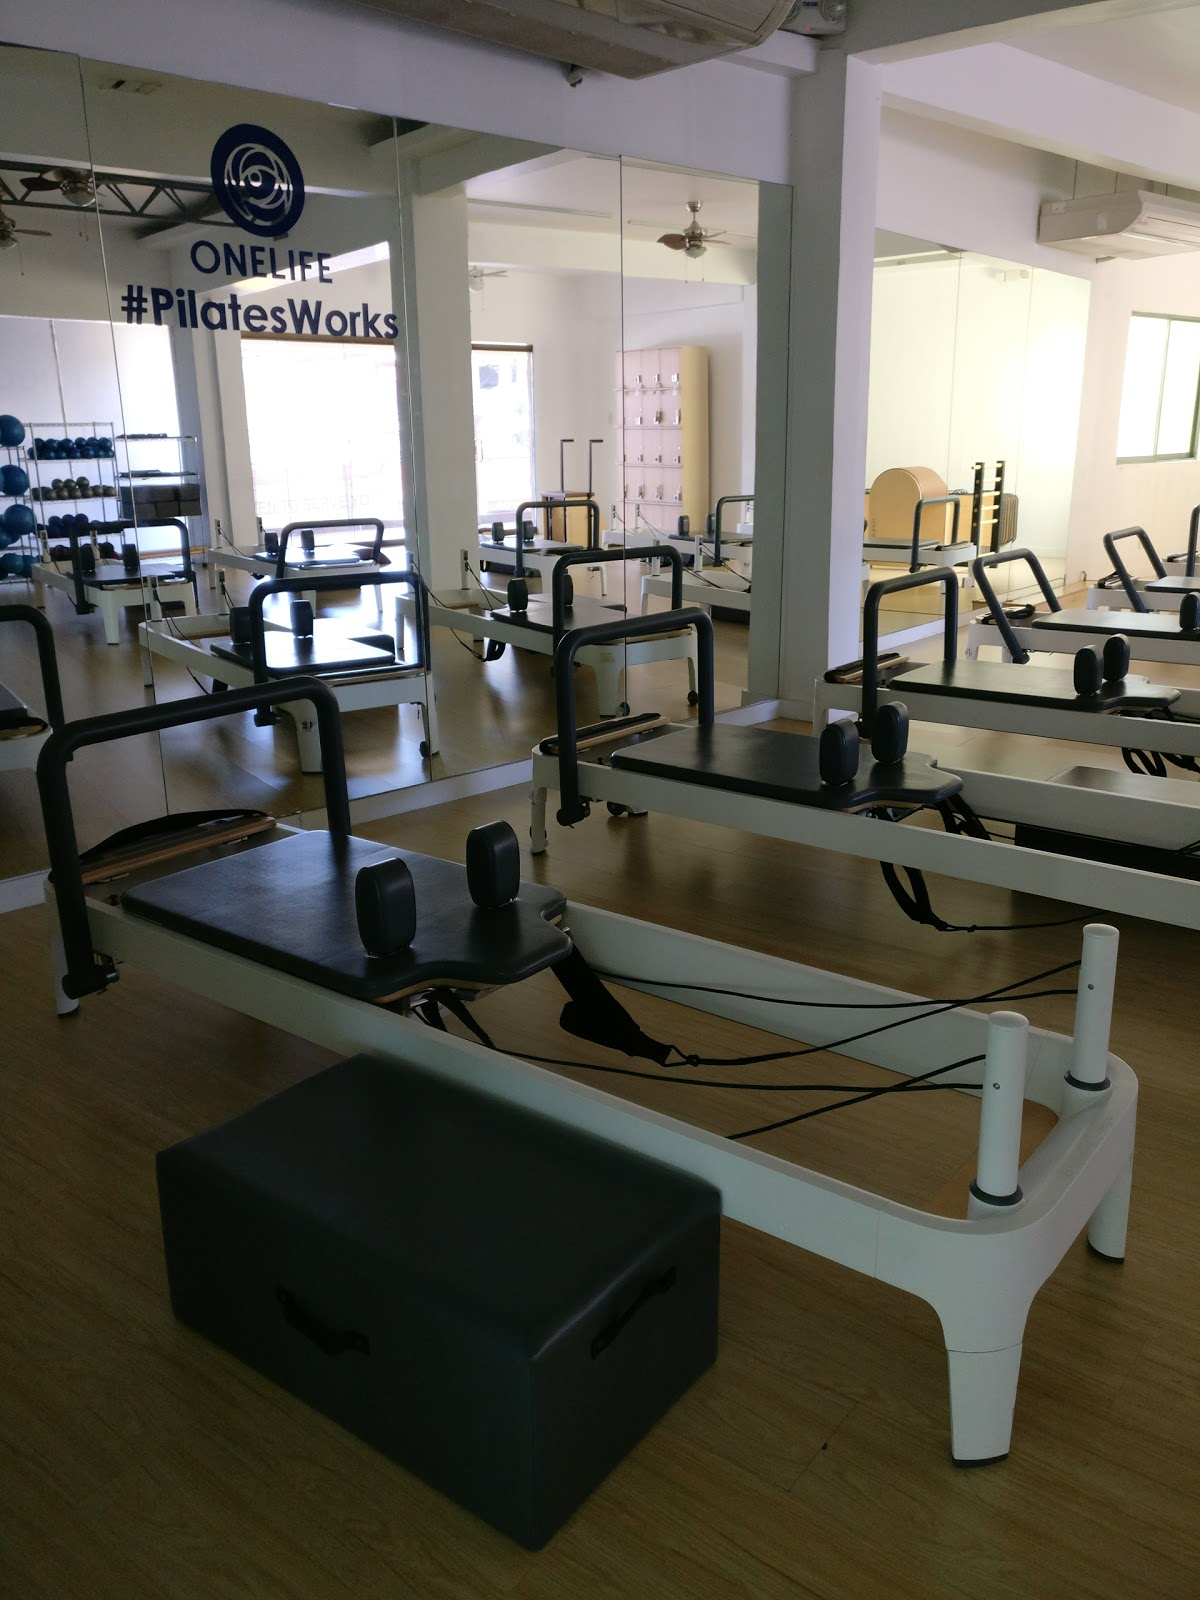 Onelife Studio Pilates - photo